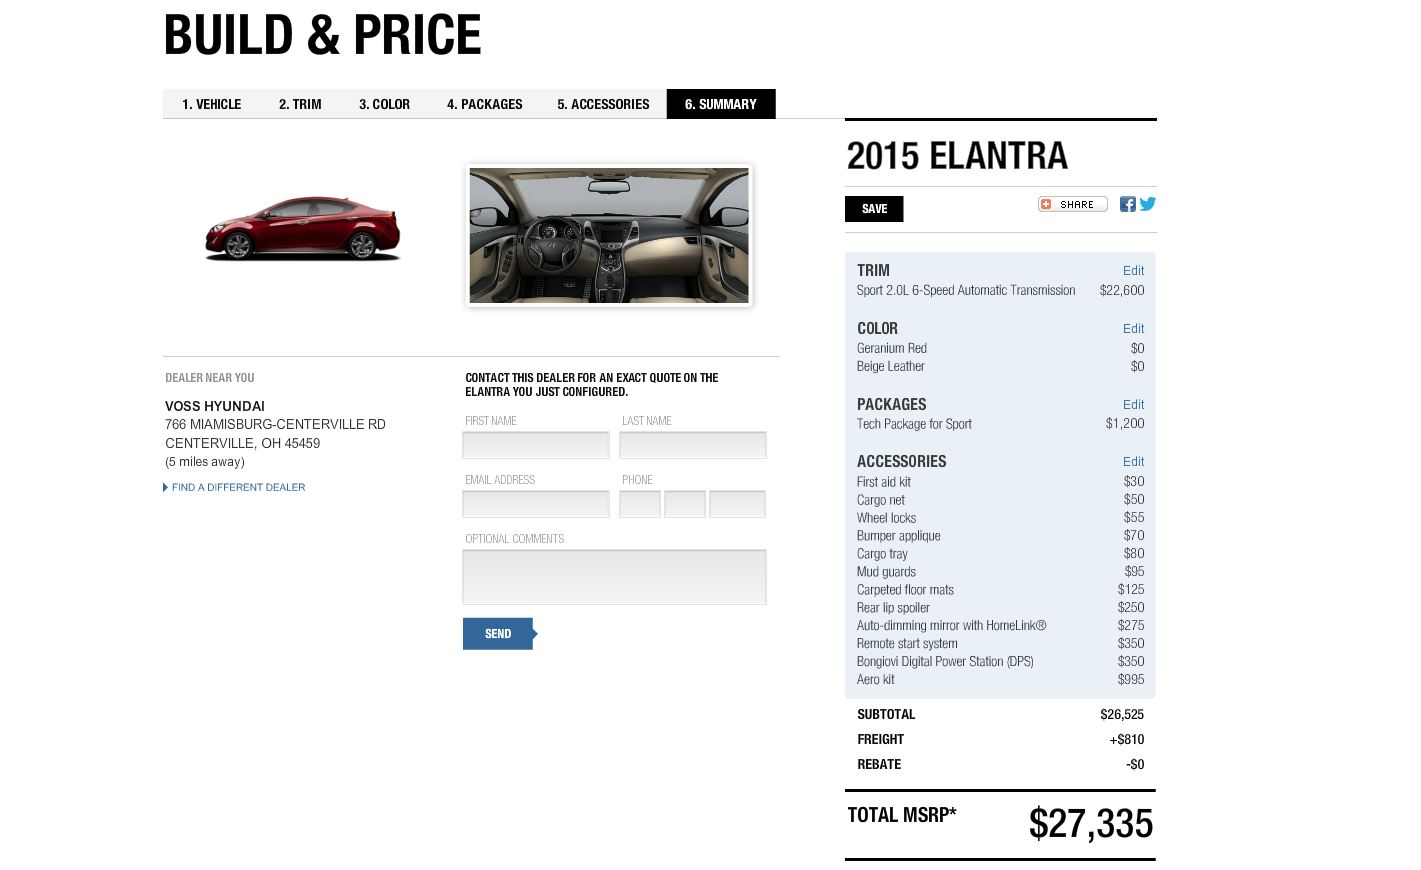 2015 hyundai sonata pricing options and specifications cleanmpg - 2015 Hyundai Elantra Configurator Reveals No Coupe Option The